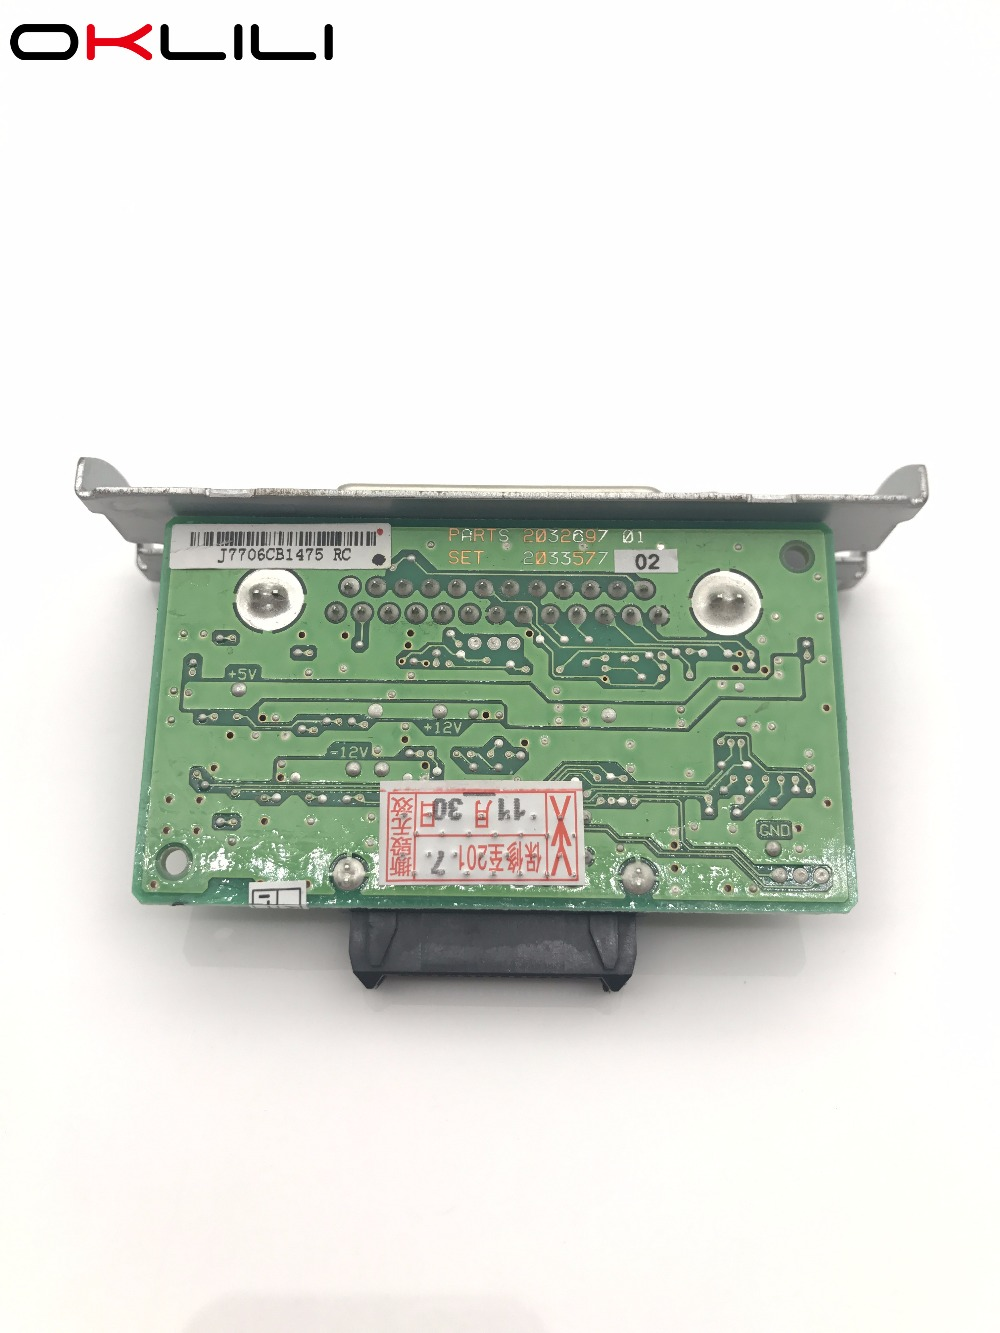 10PCX C823361 C32C823361 UB-S01 RS-232 Serial Interface Card Adapter M111a modul pcb za Epson TM U210 U290 U300 U370